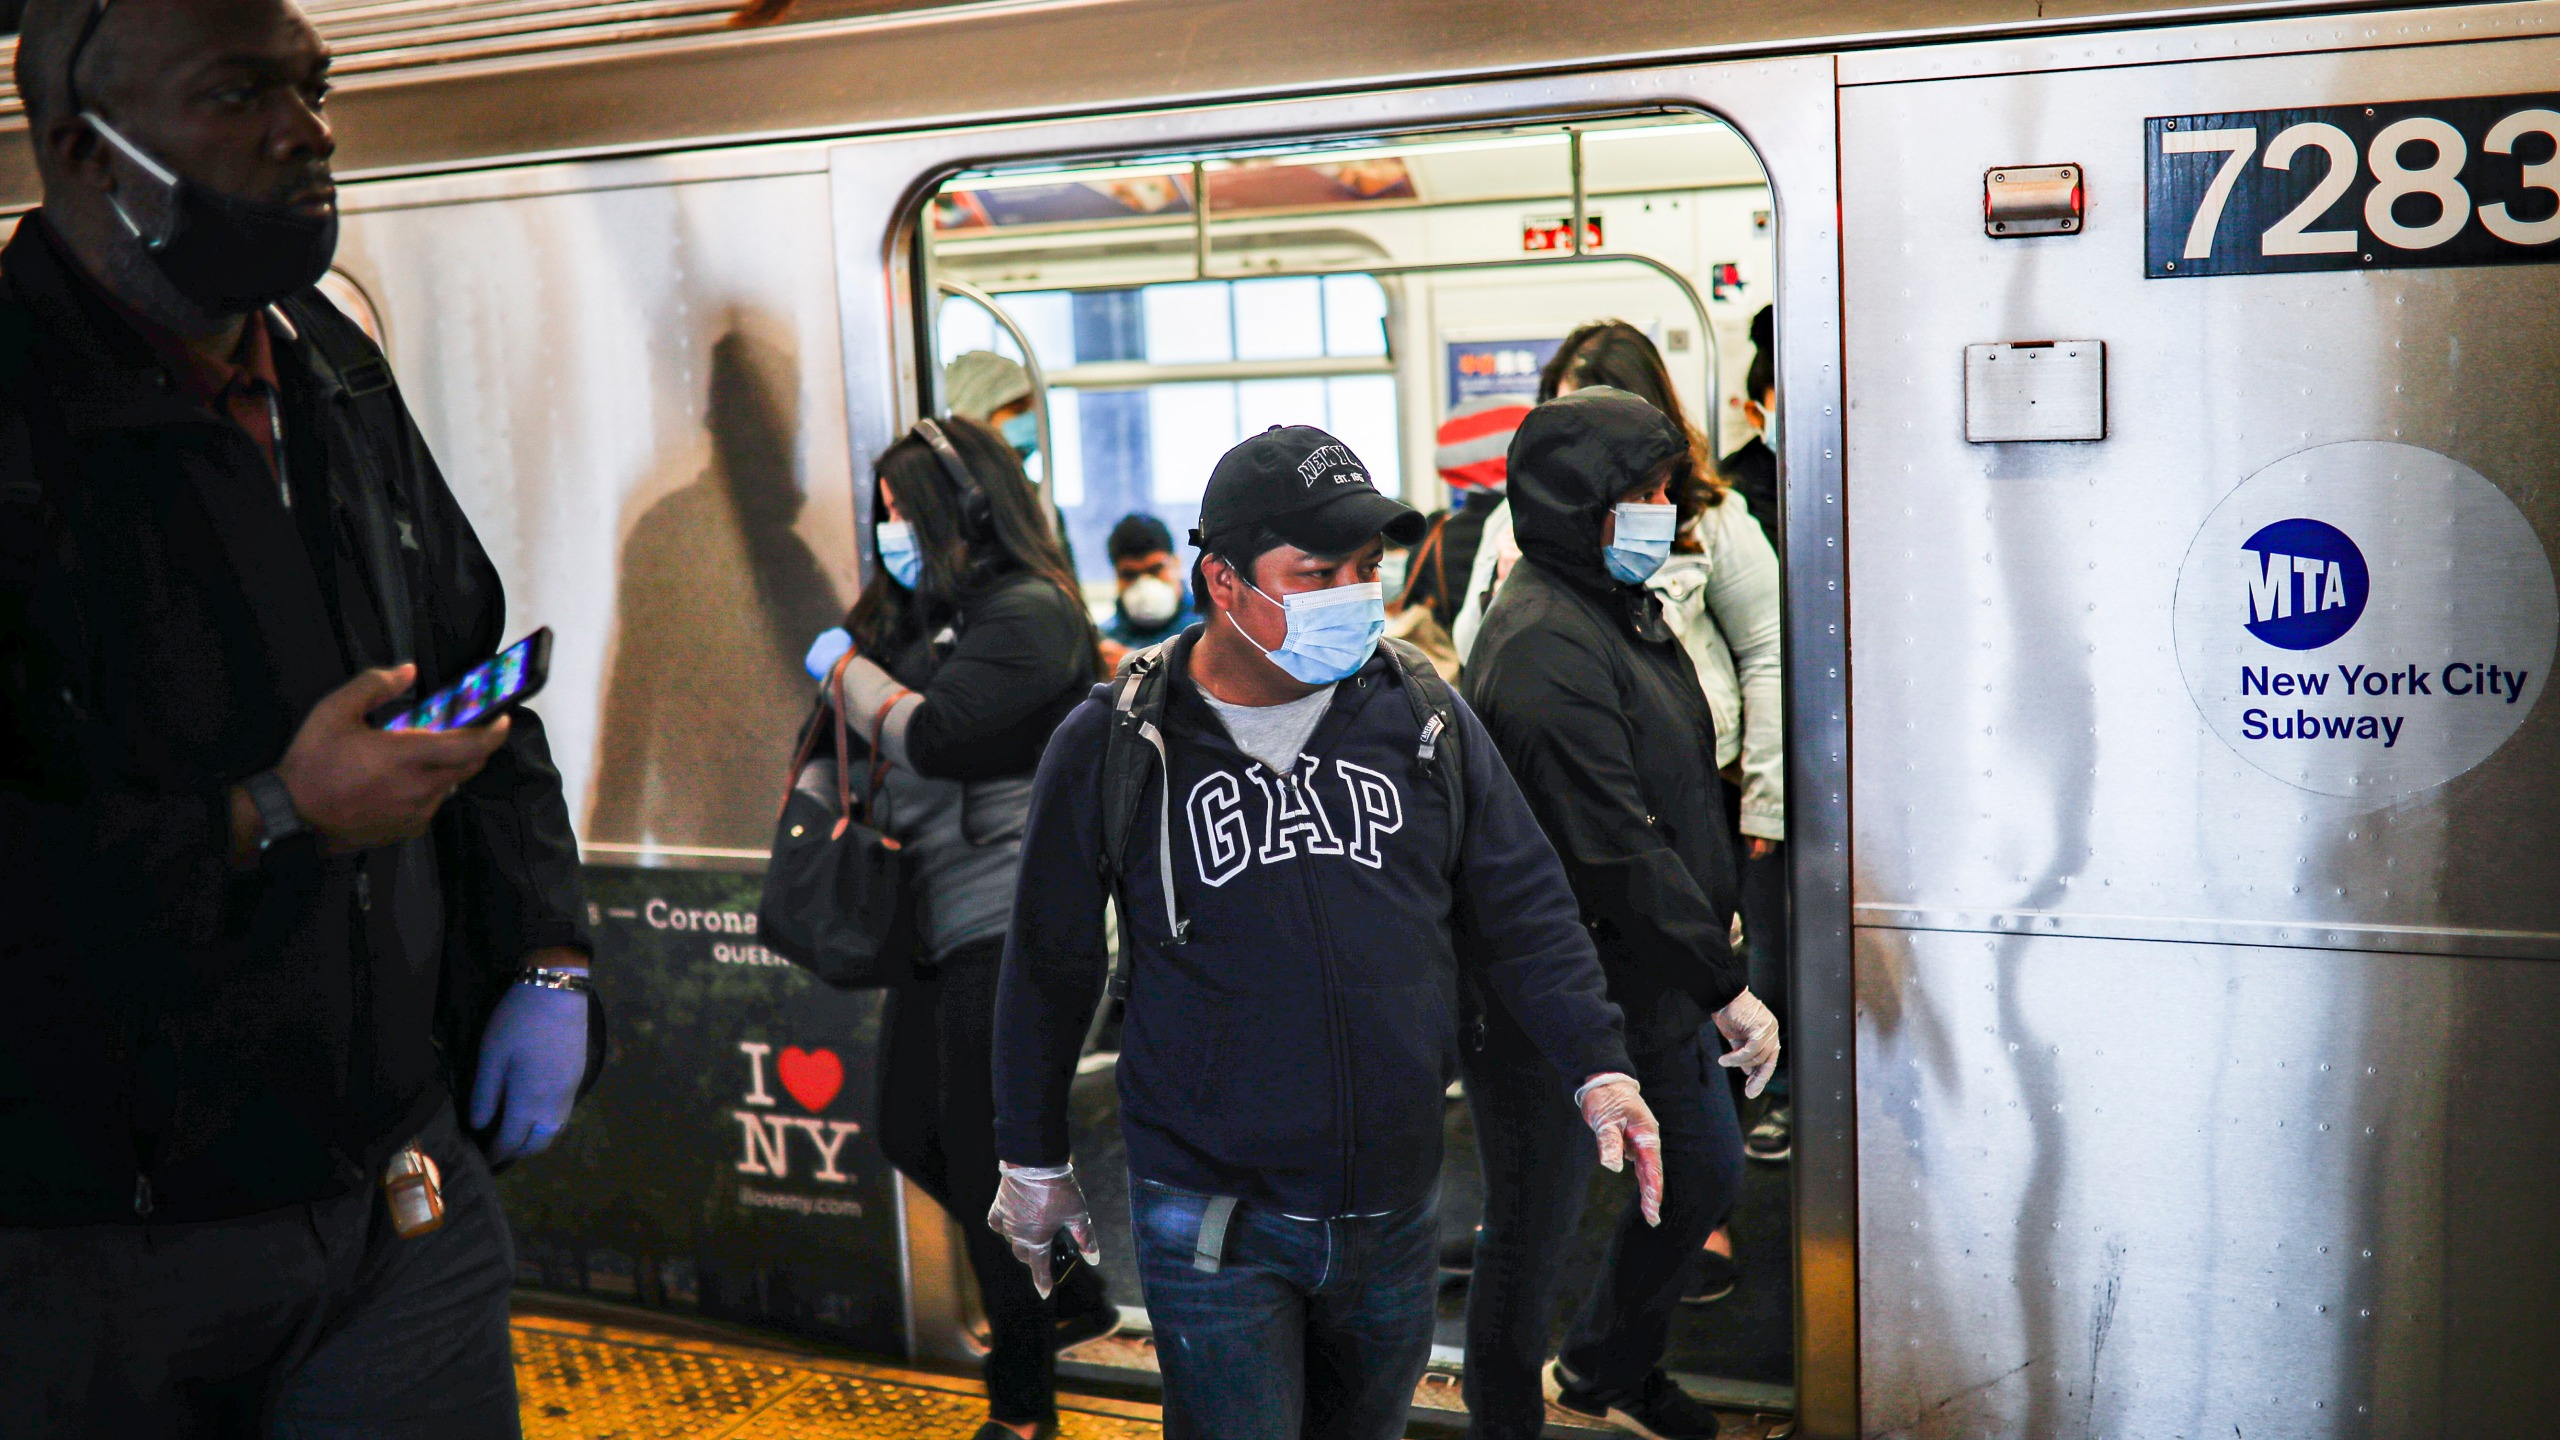 Subway riders, wearing personal protective equipment due to COVID-19 concerns, step off a train in New York. (AP Photo/John Minchillo)